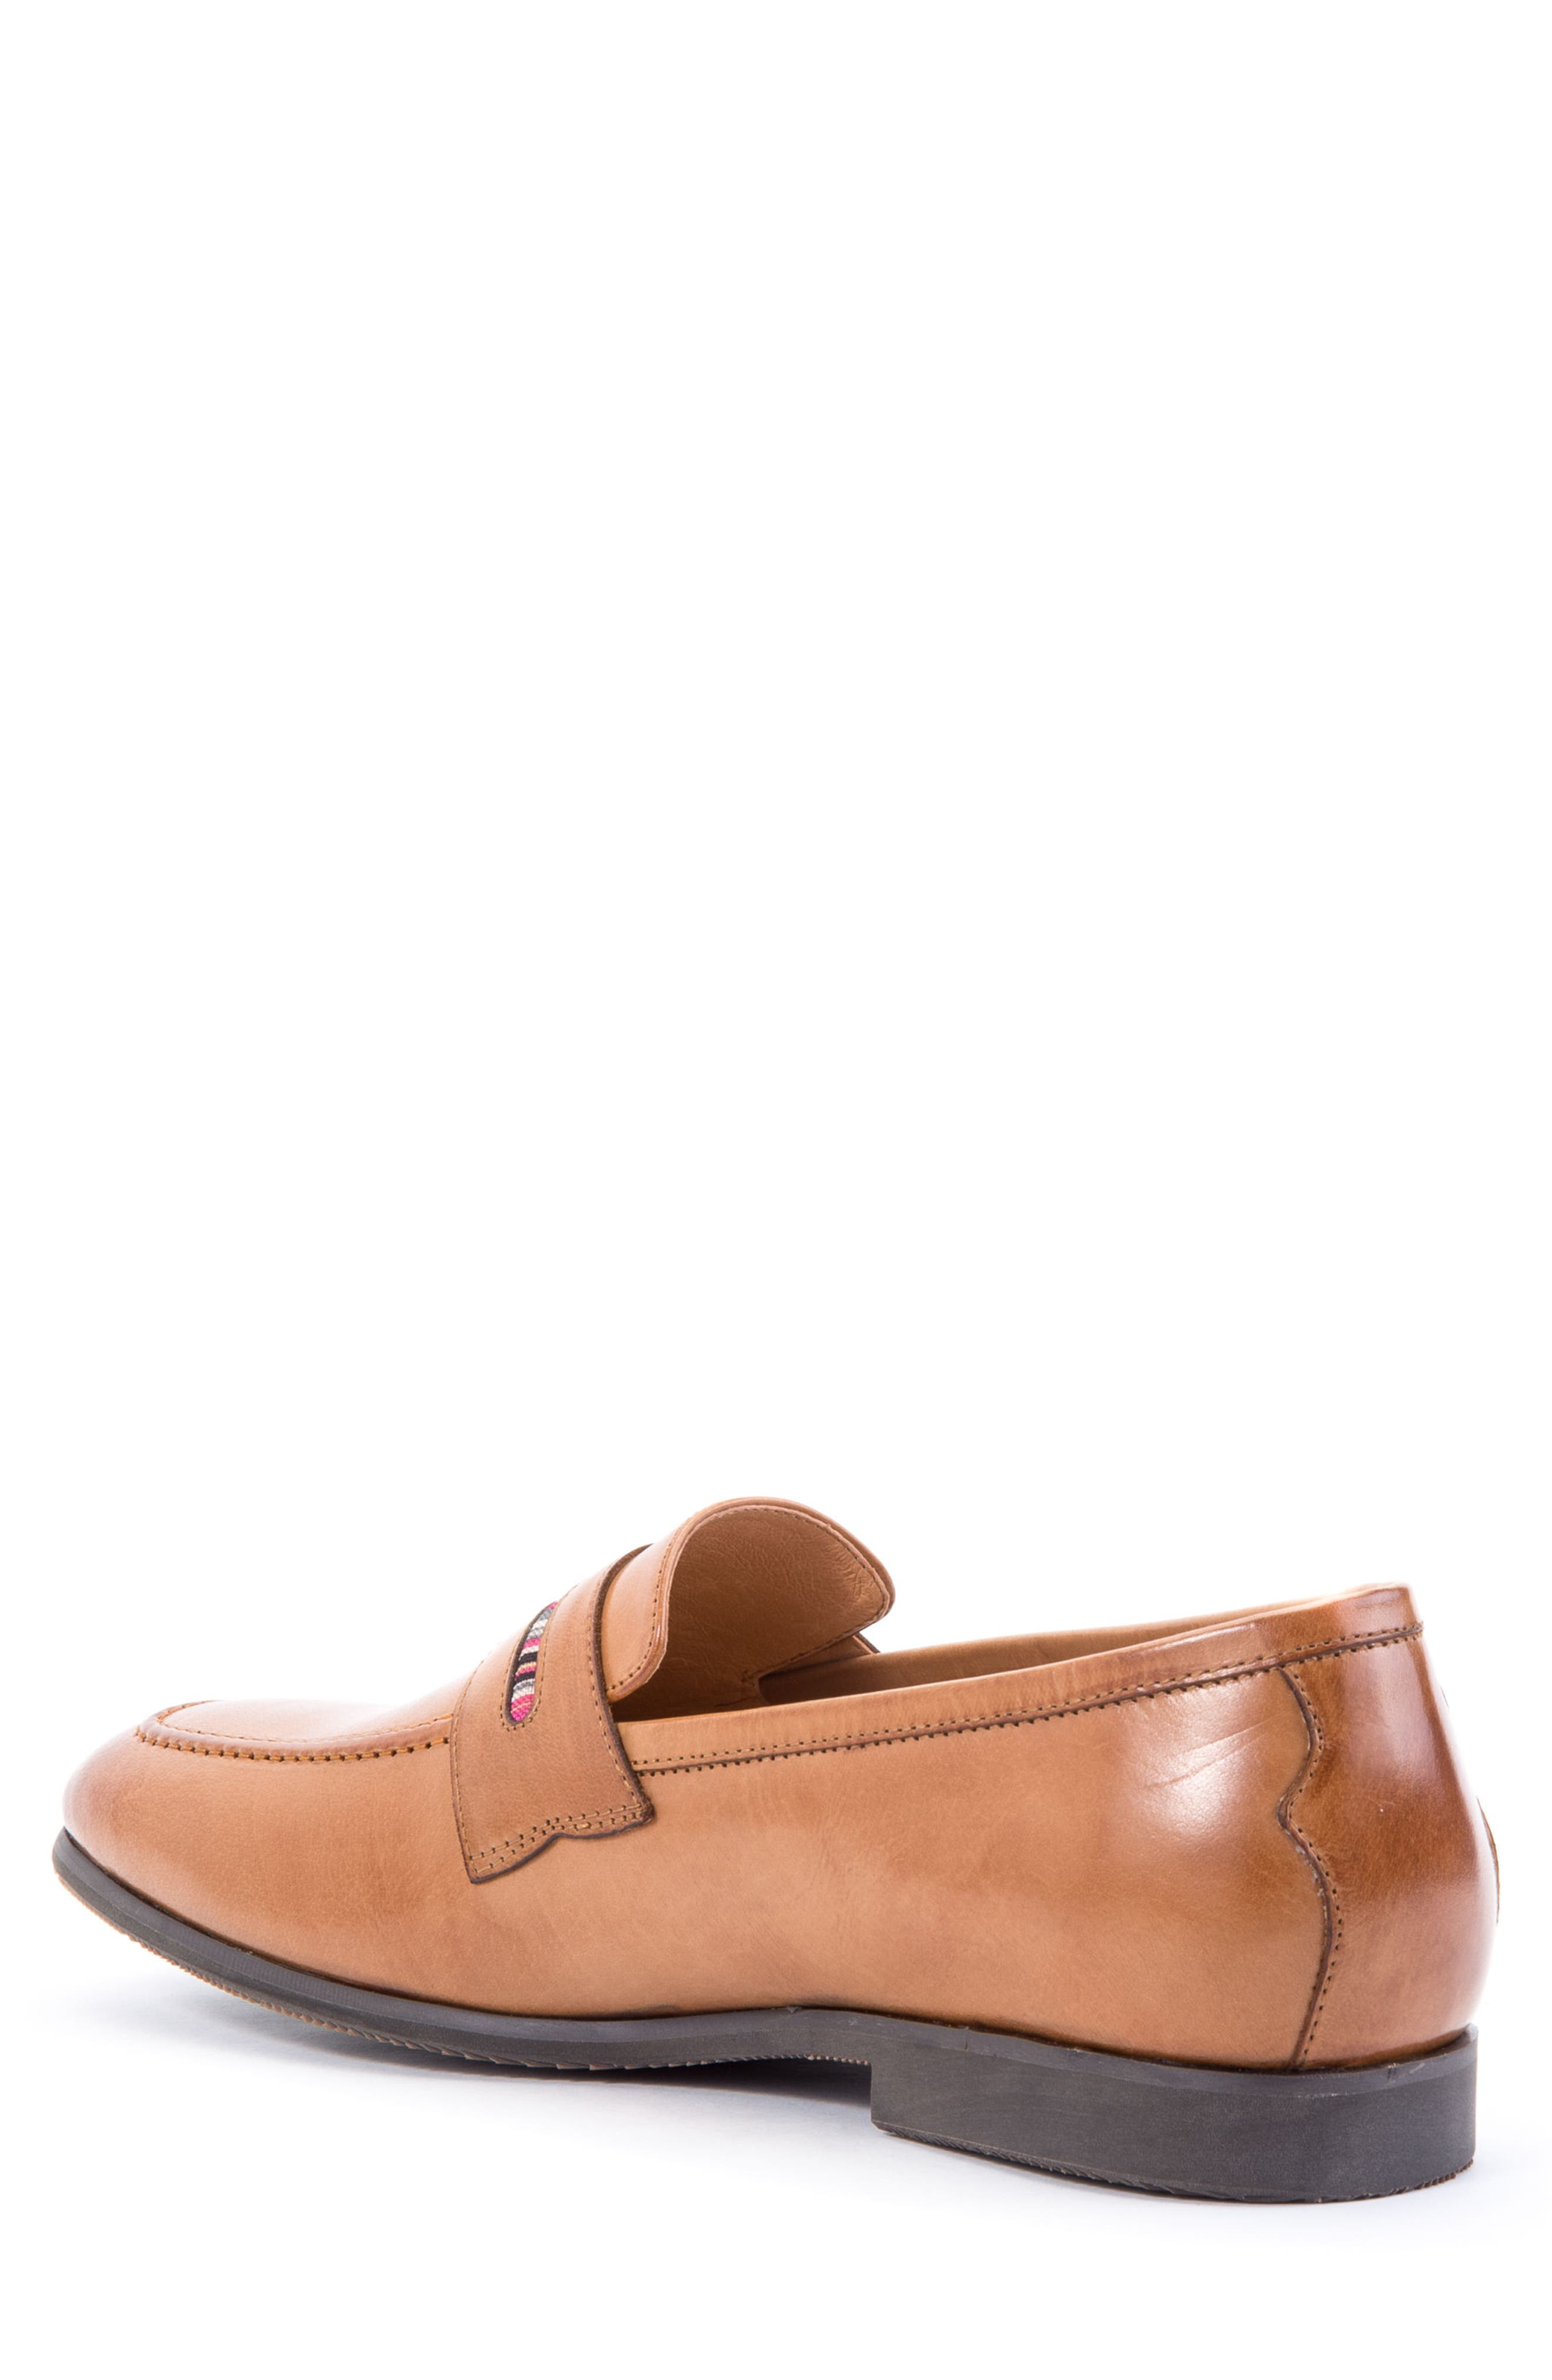 Hugo Penny Loafer,                             Alternate thumbnail 2, color,                             Cognac Leather